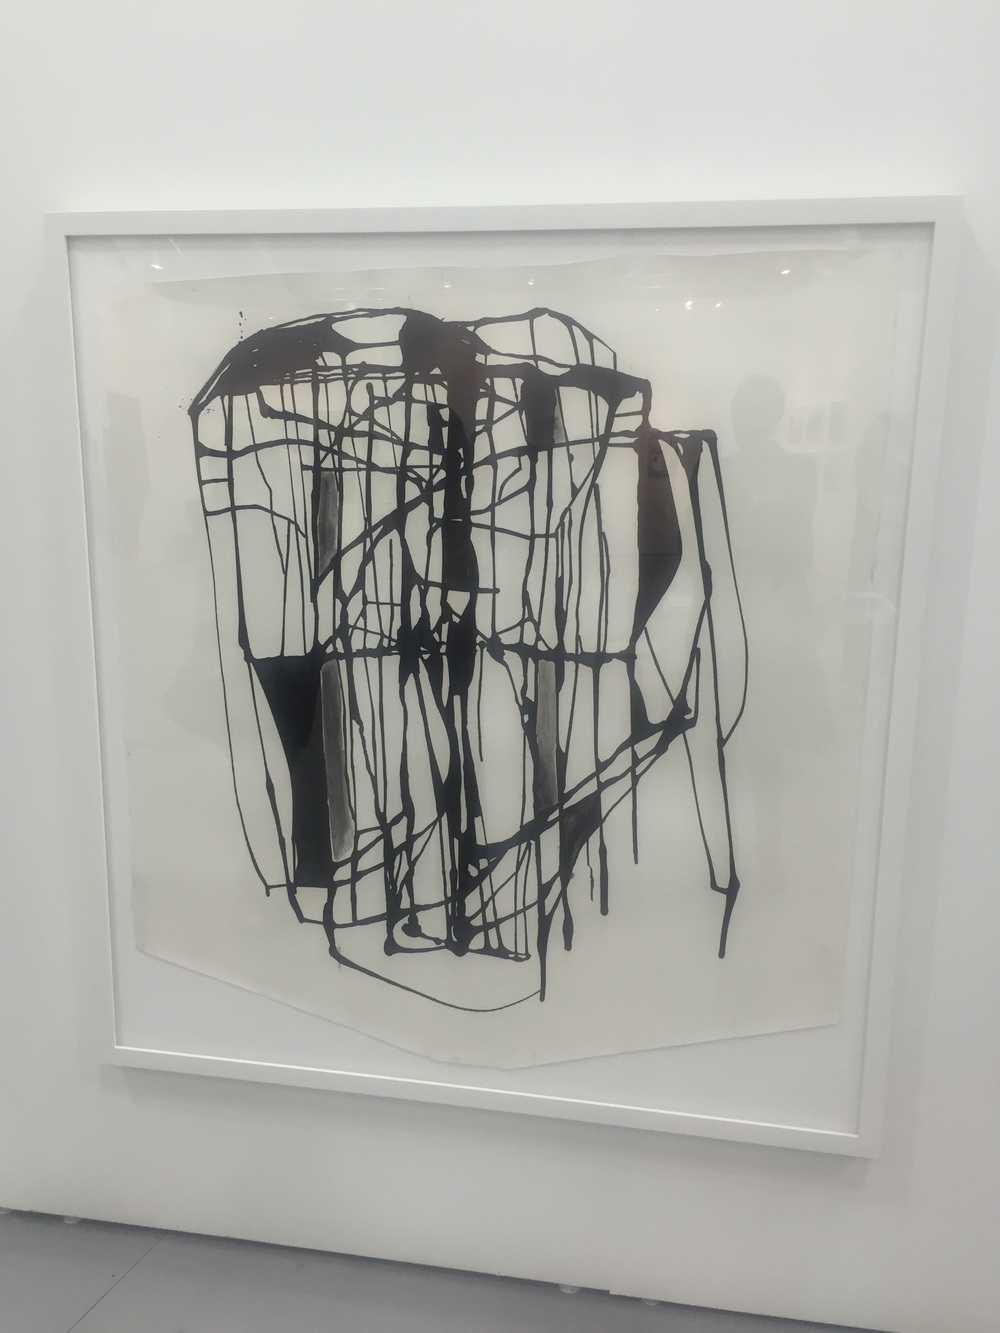 Sheree Hovsepian, Monique Meloche Gallery, Chicago - Untitled